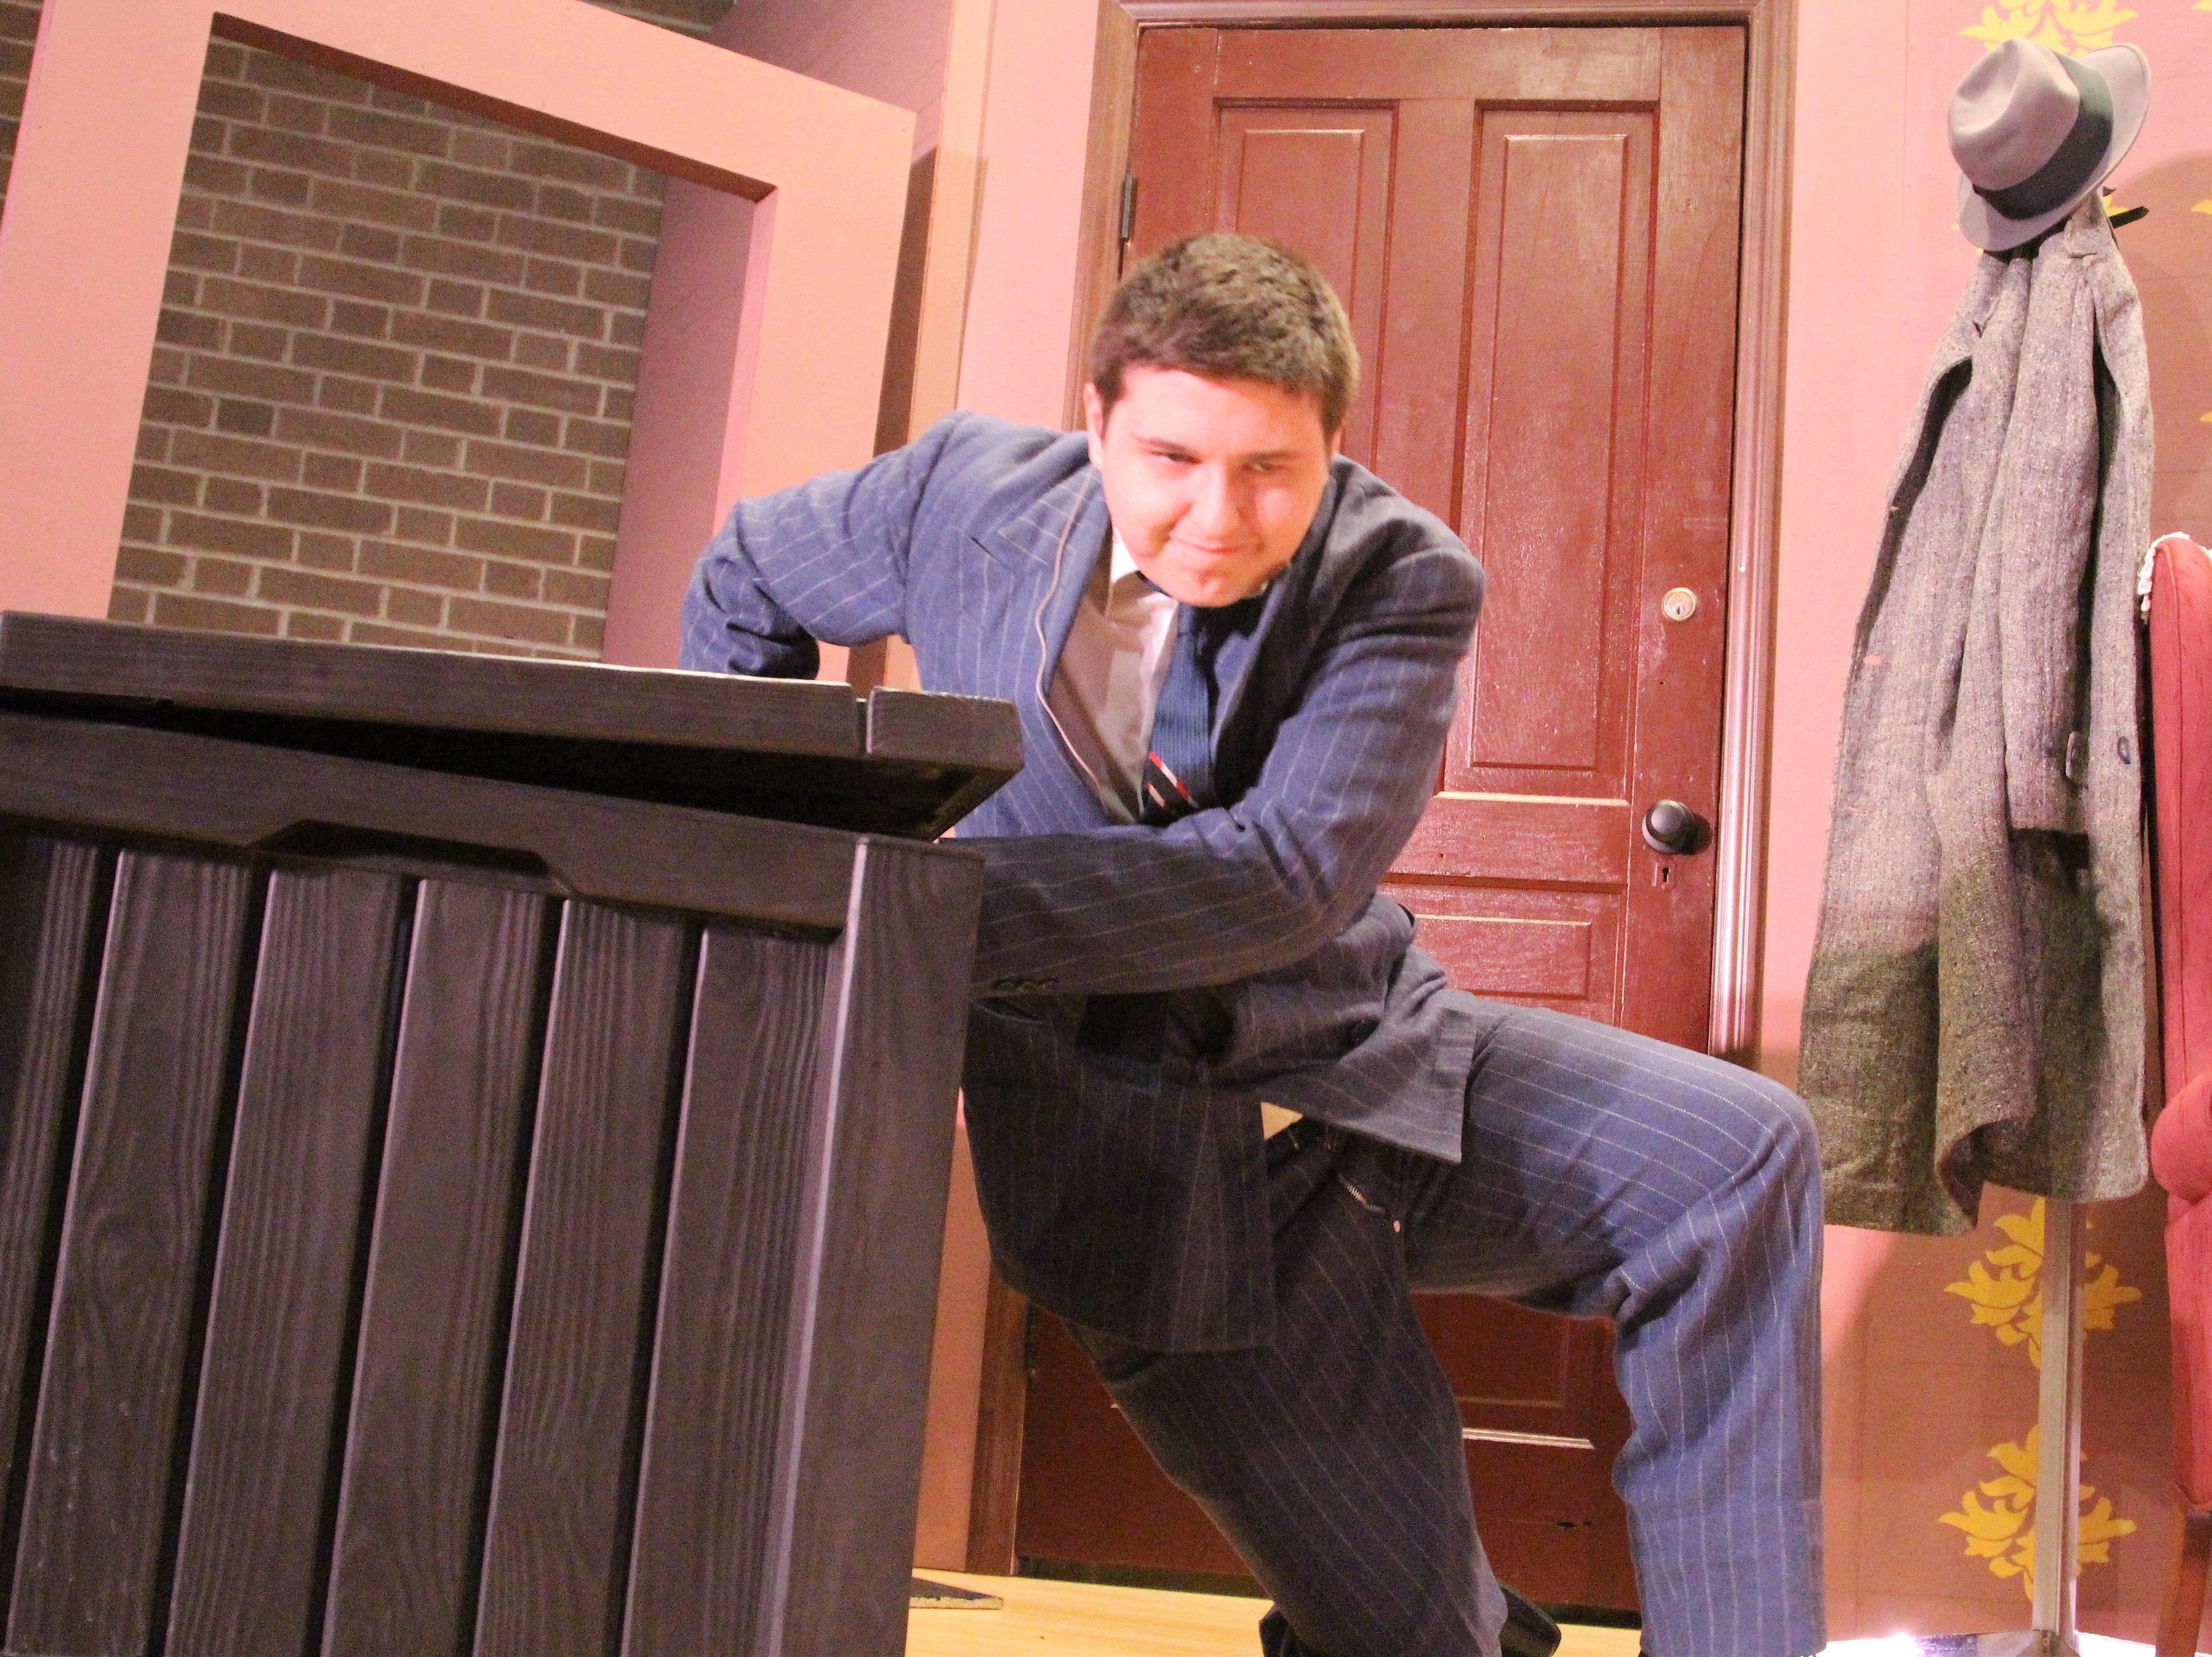 Mortimer Brewster, played by OSU Marion student Darren Sites, collapses at his family's home after discovering a sinister secret.